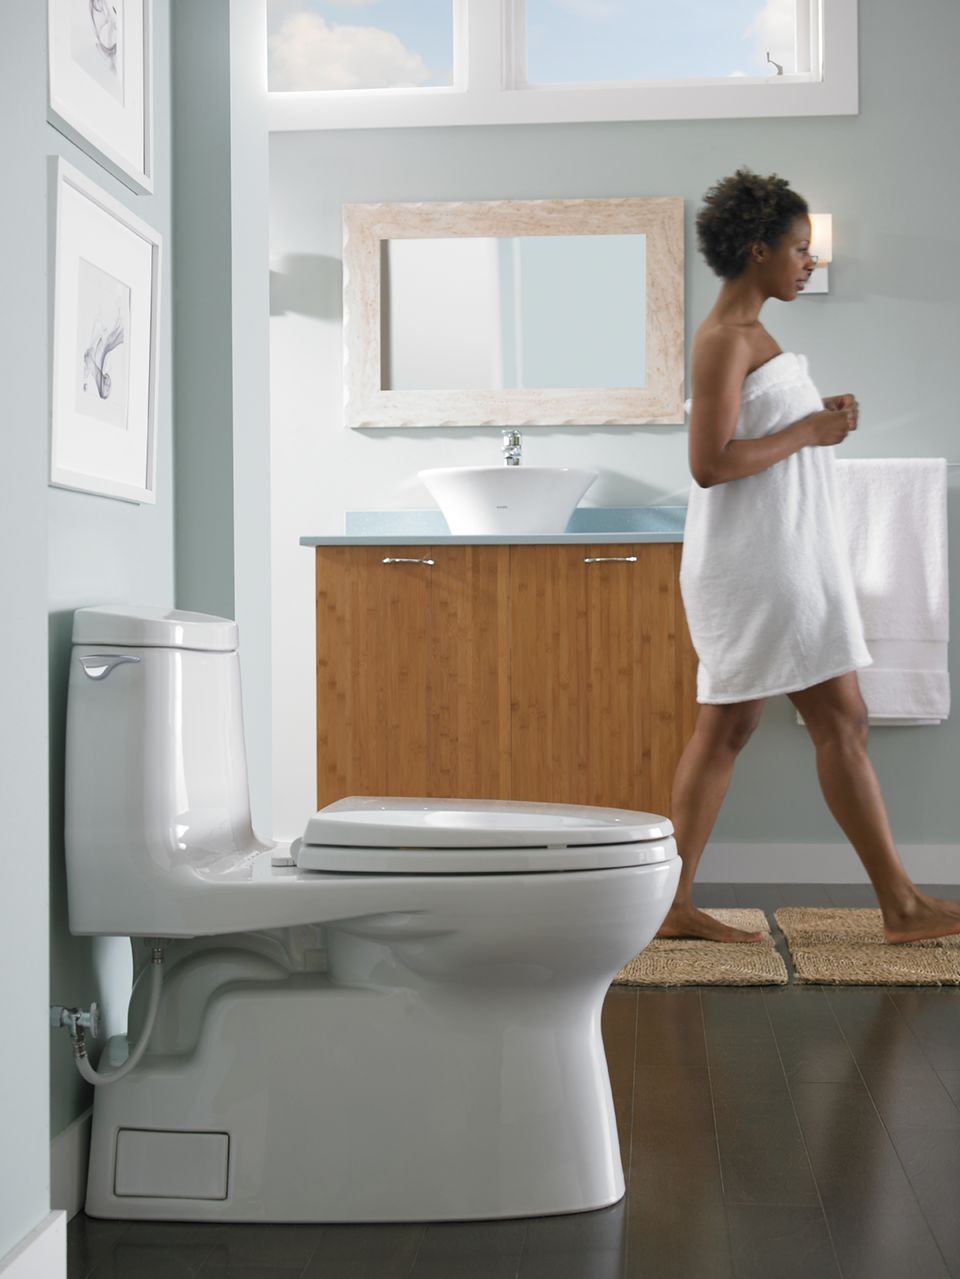 Carlyle 174 Ii 1g One Piece Toilet 1 0 Gpf Elongated Bowl